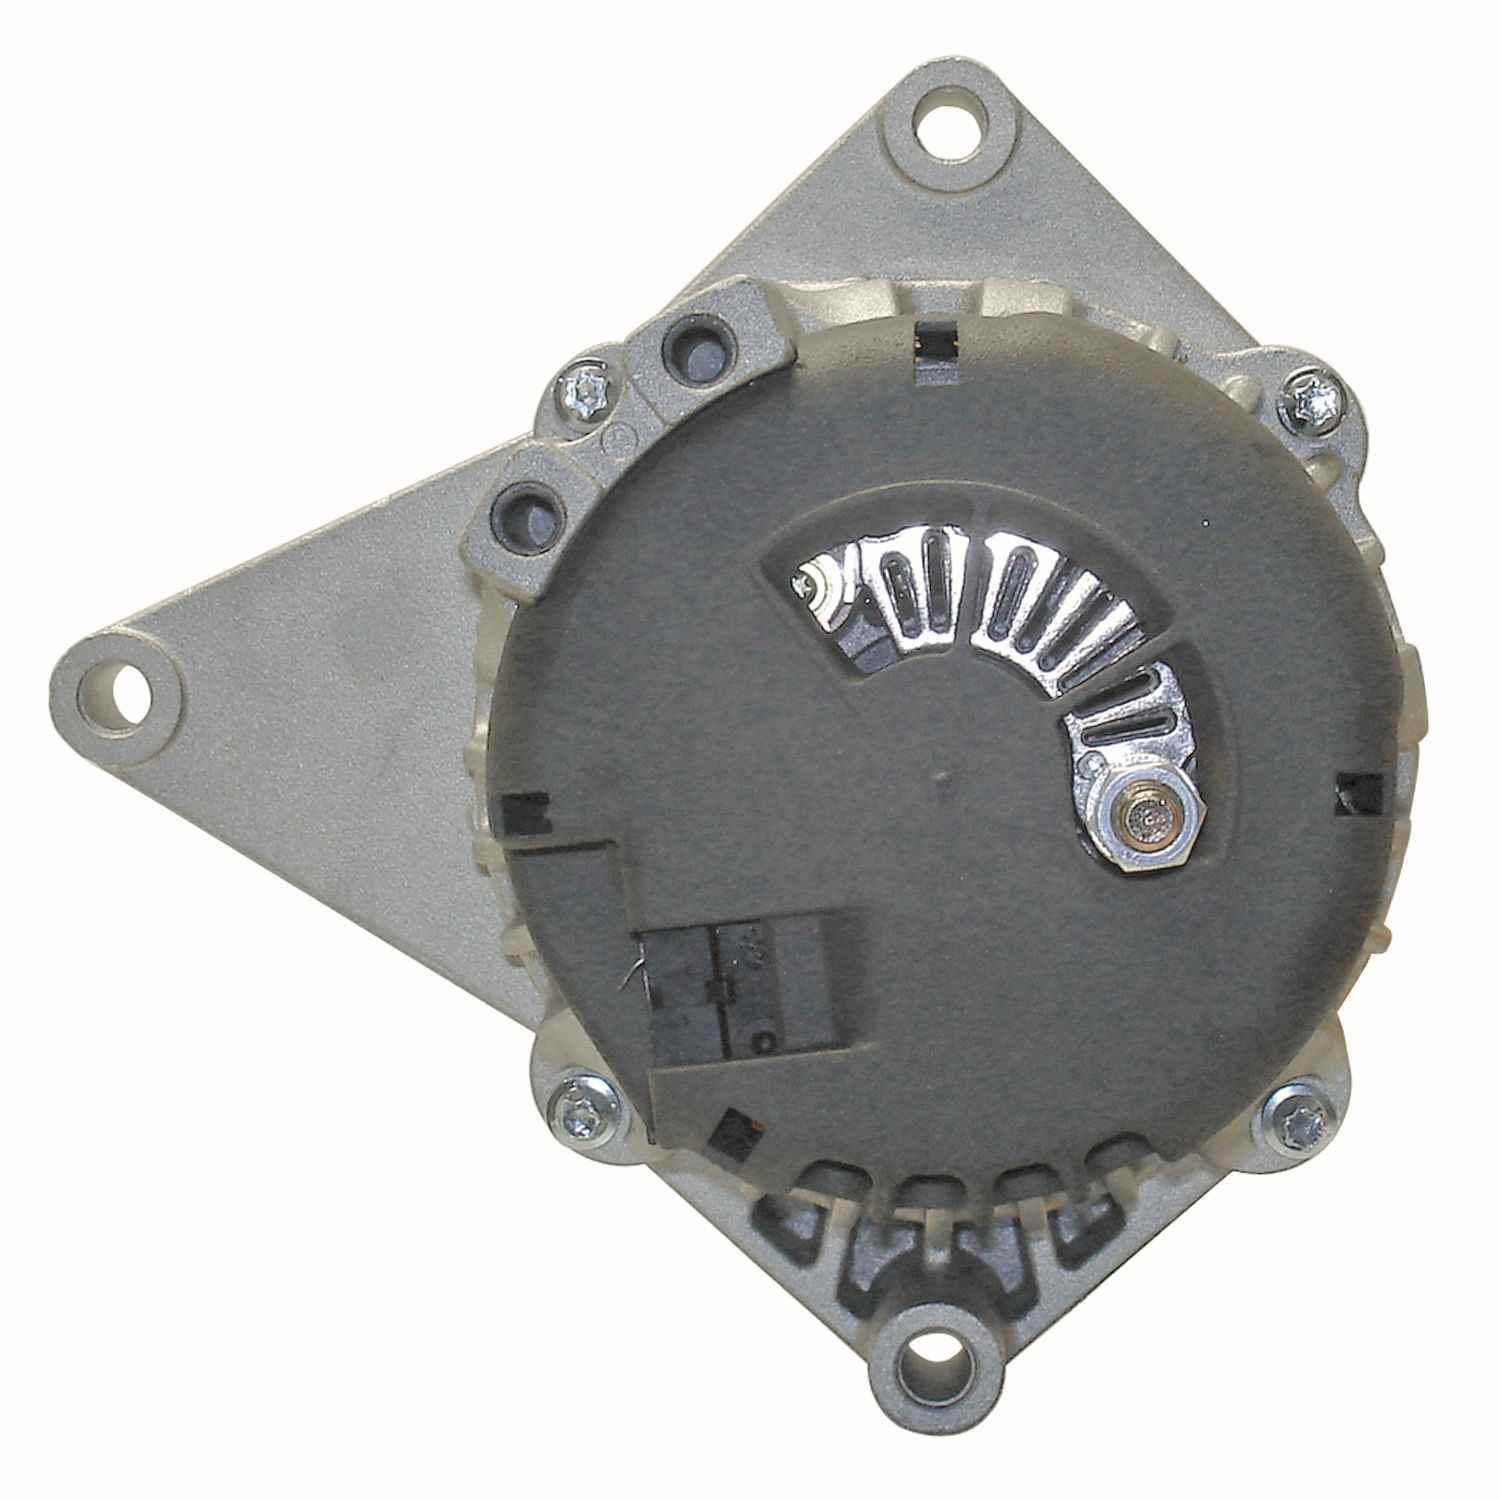 ACDELCO PROFESSIONAL - Reman Alternator - DCC 334-2467A